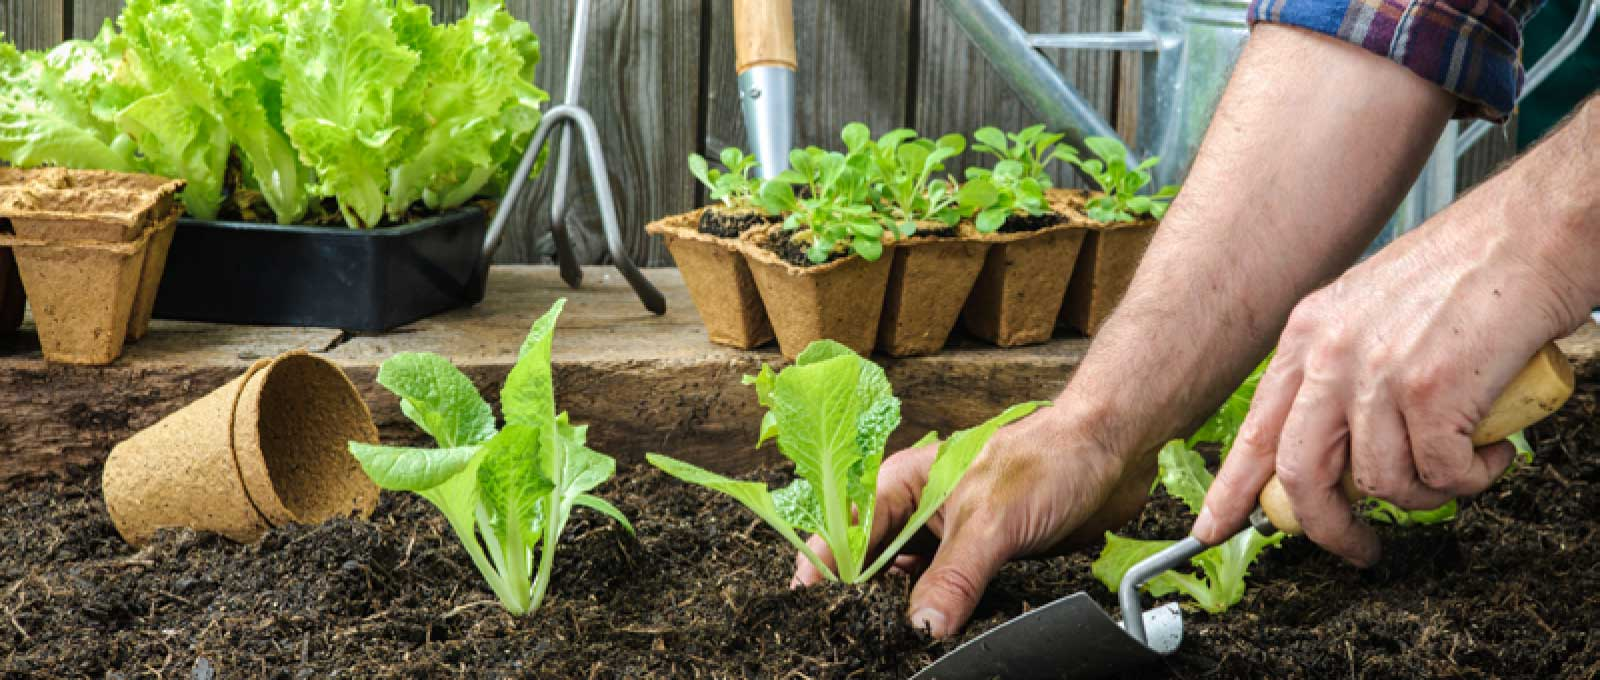 Blog 037 Growing Vegetables